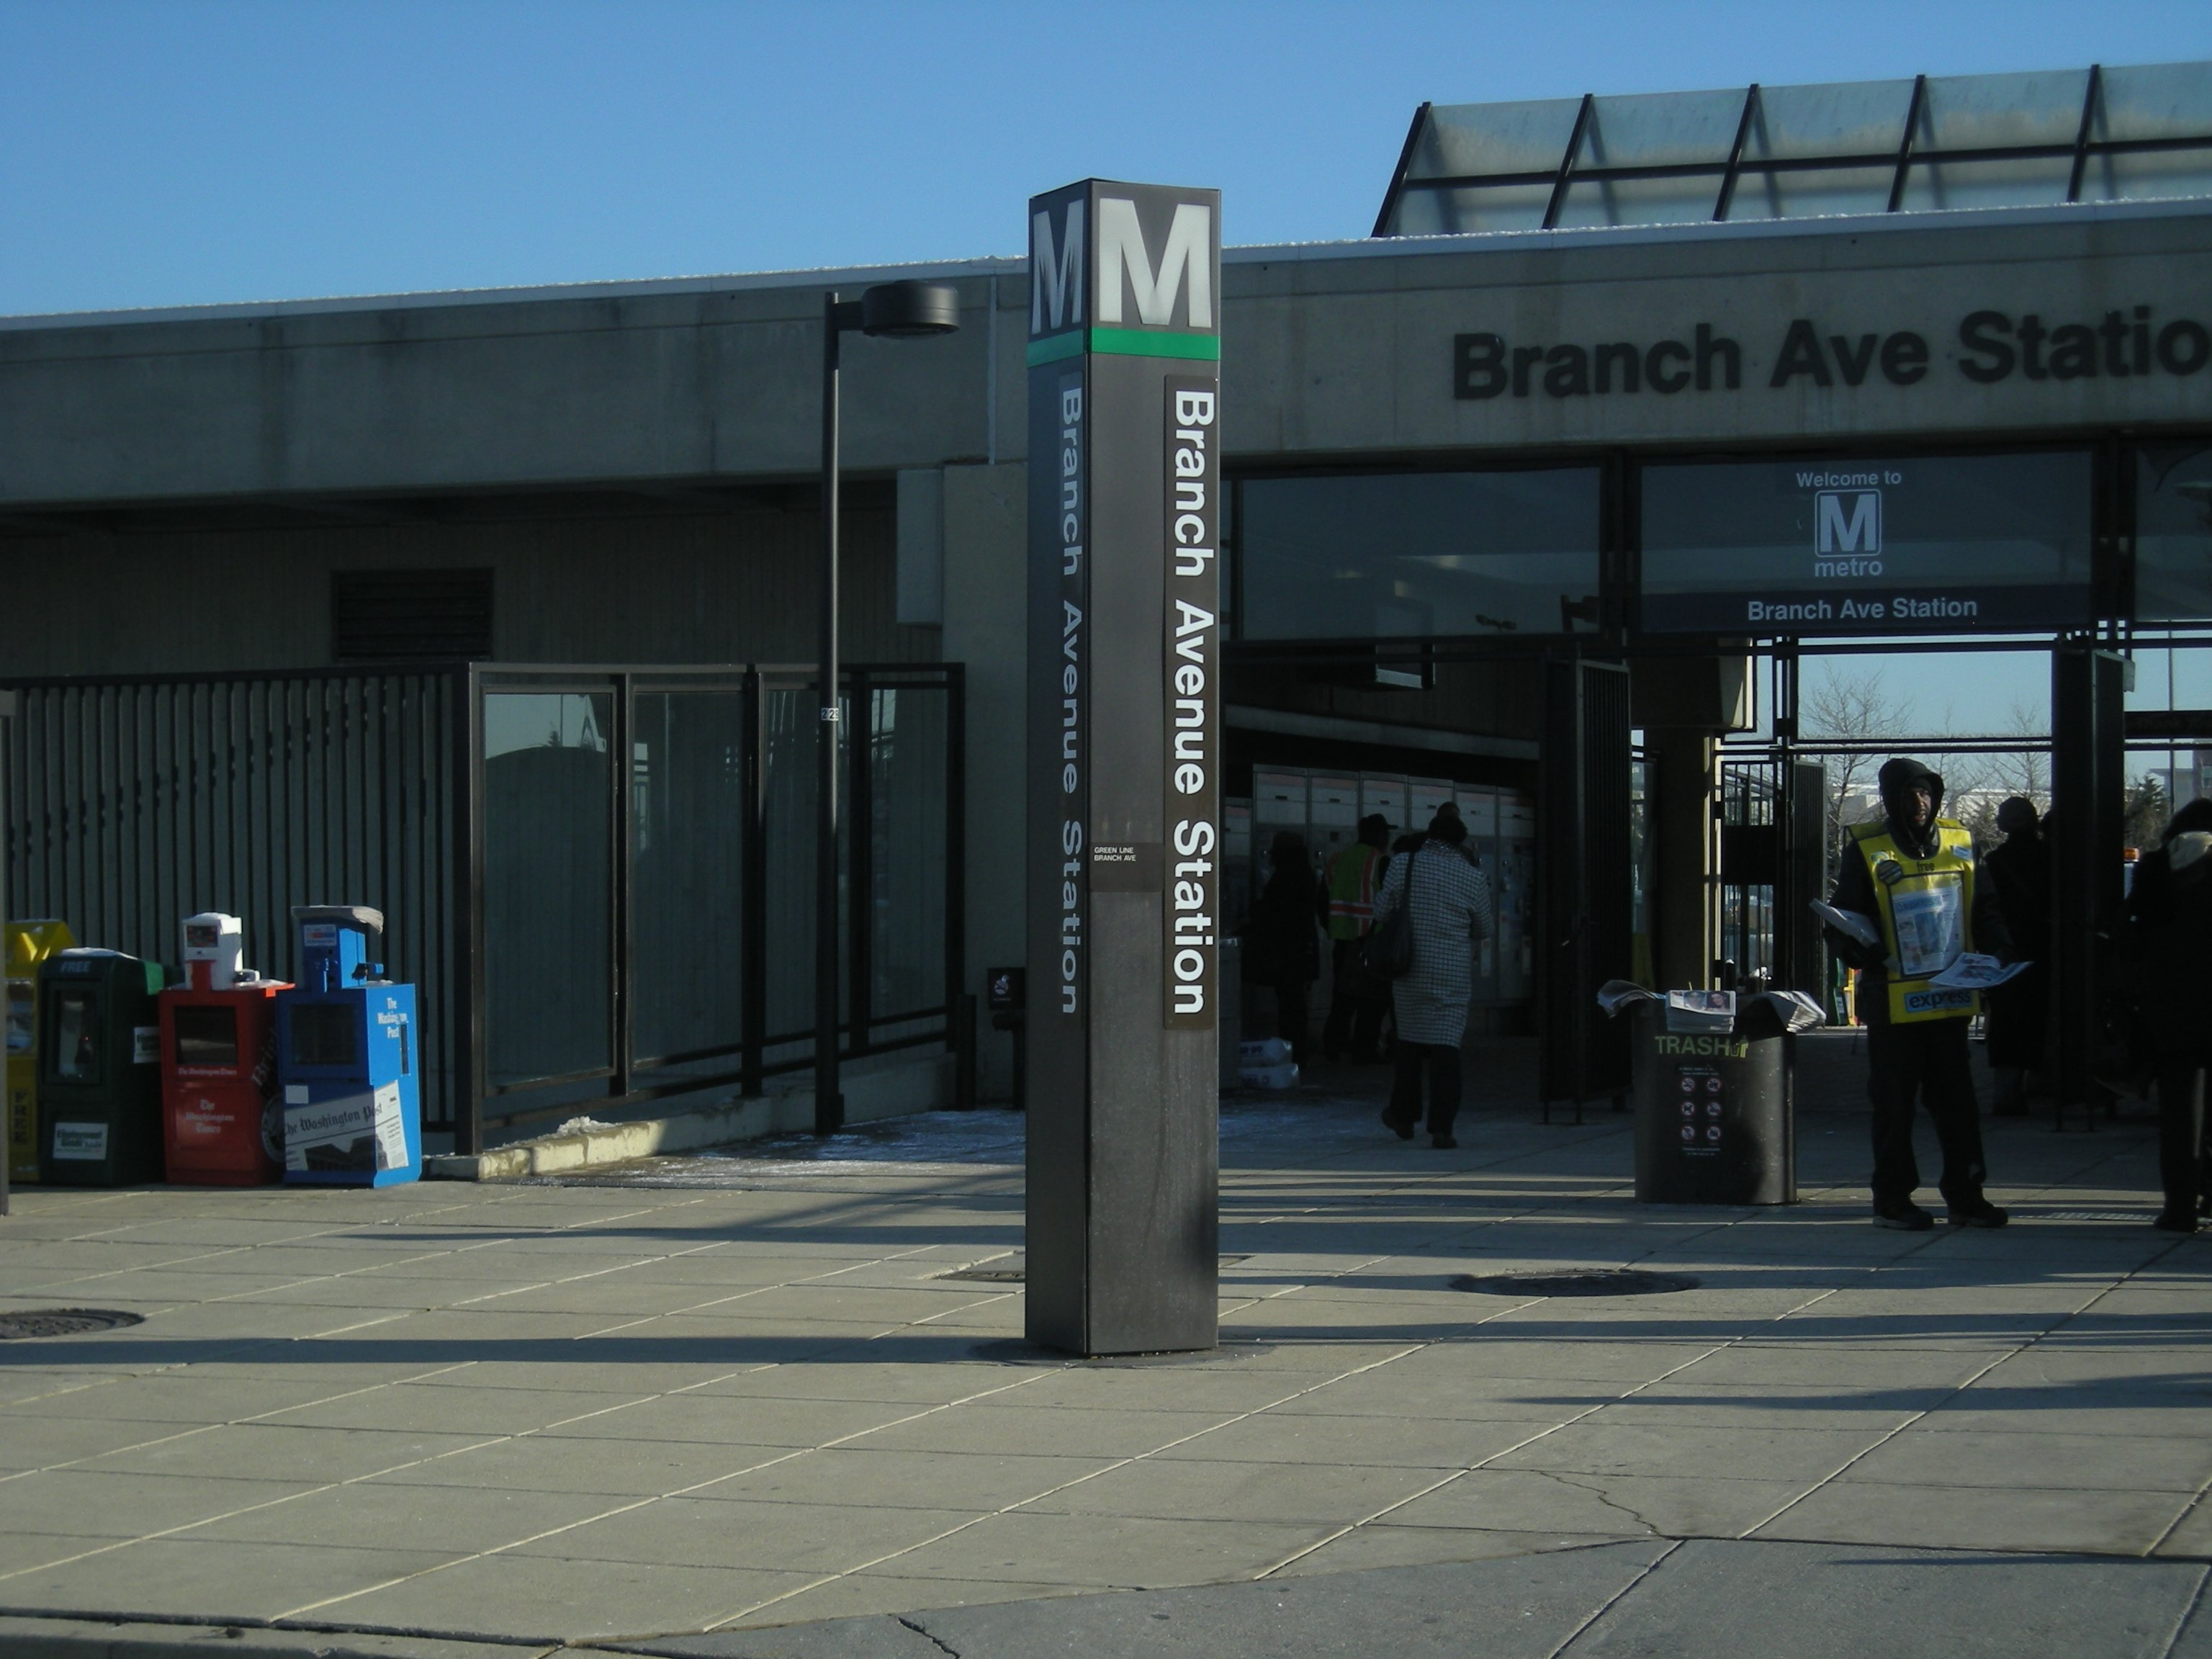 Branch Ave Metro Station